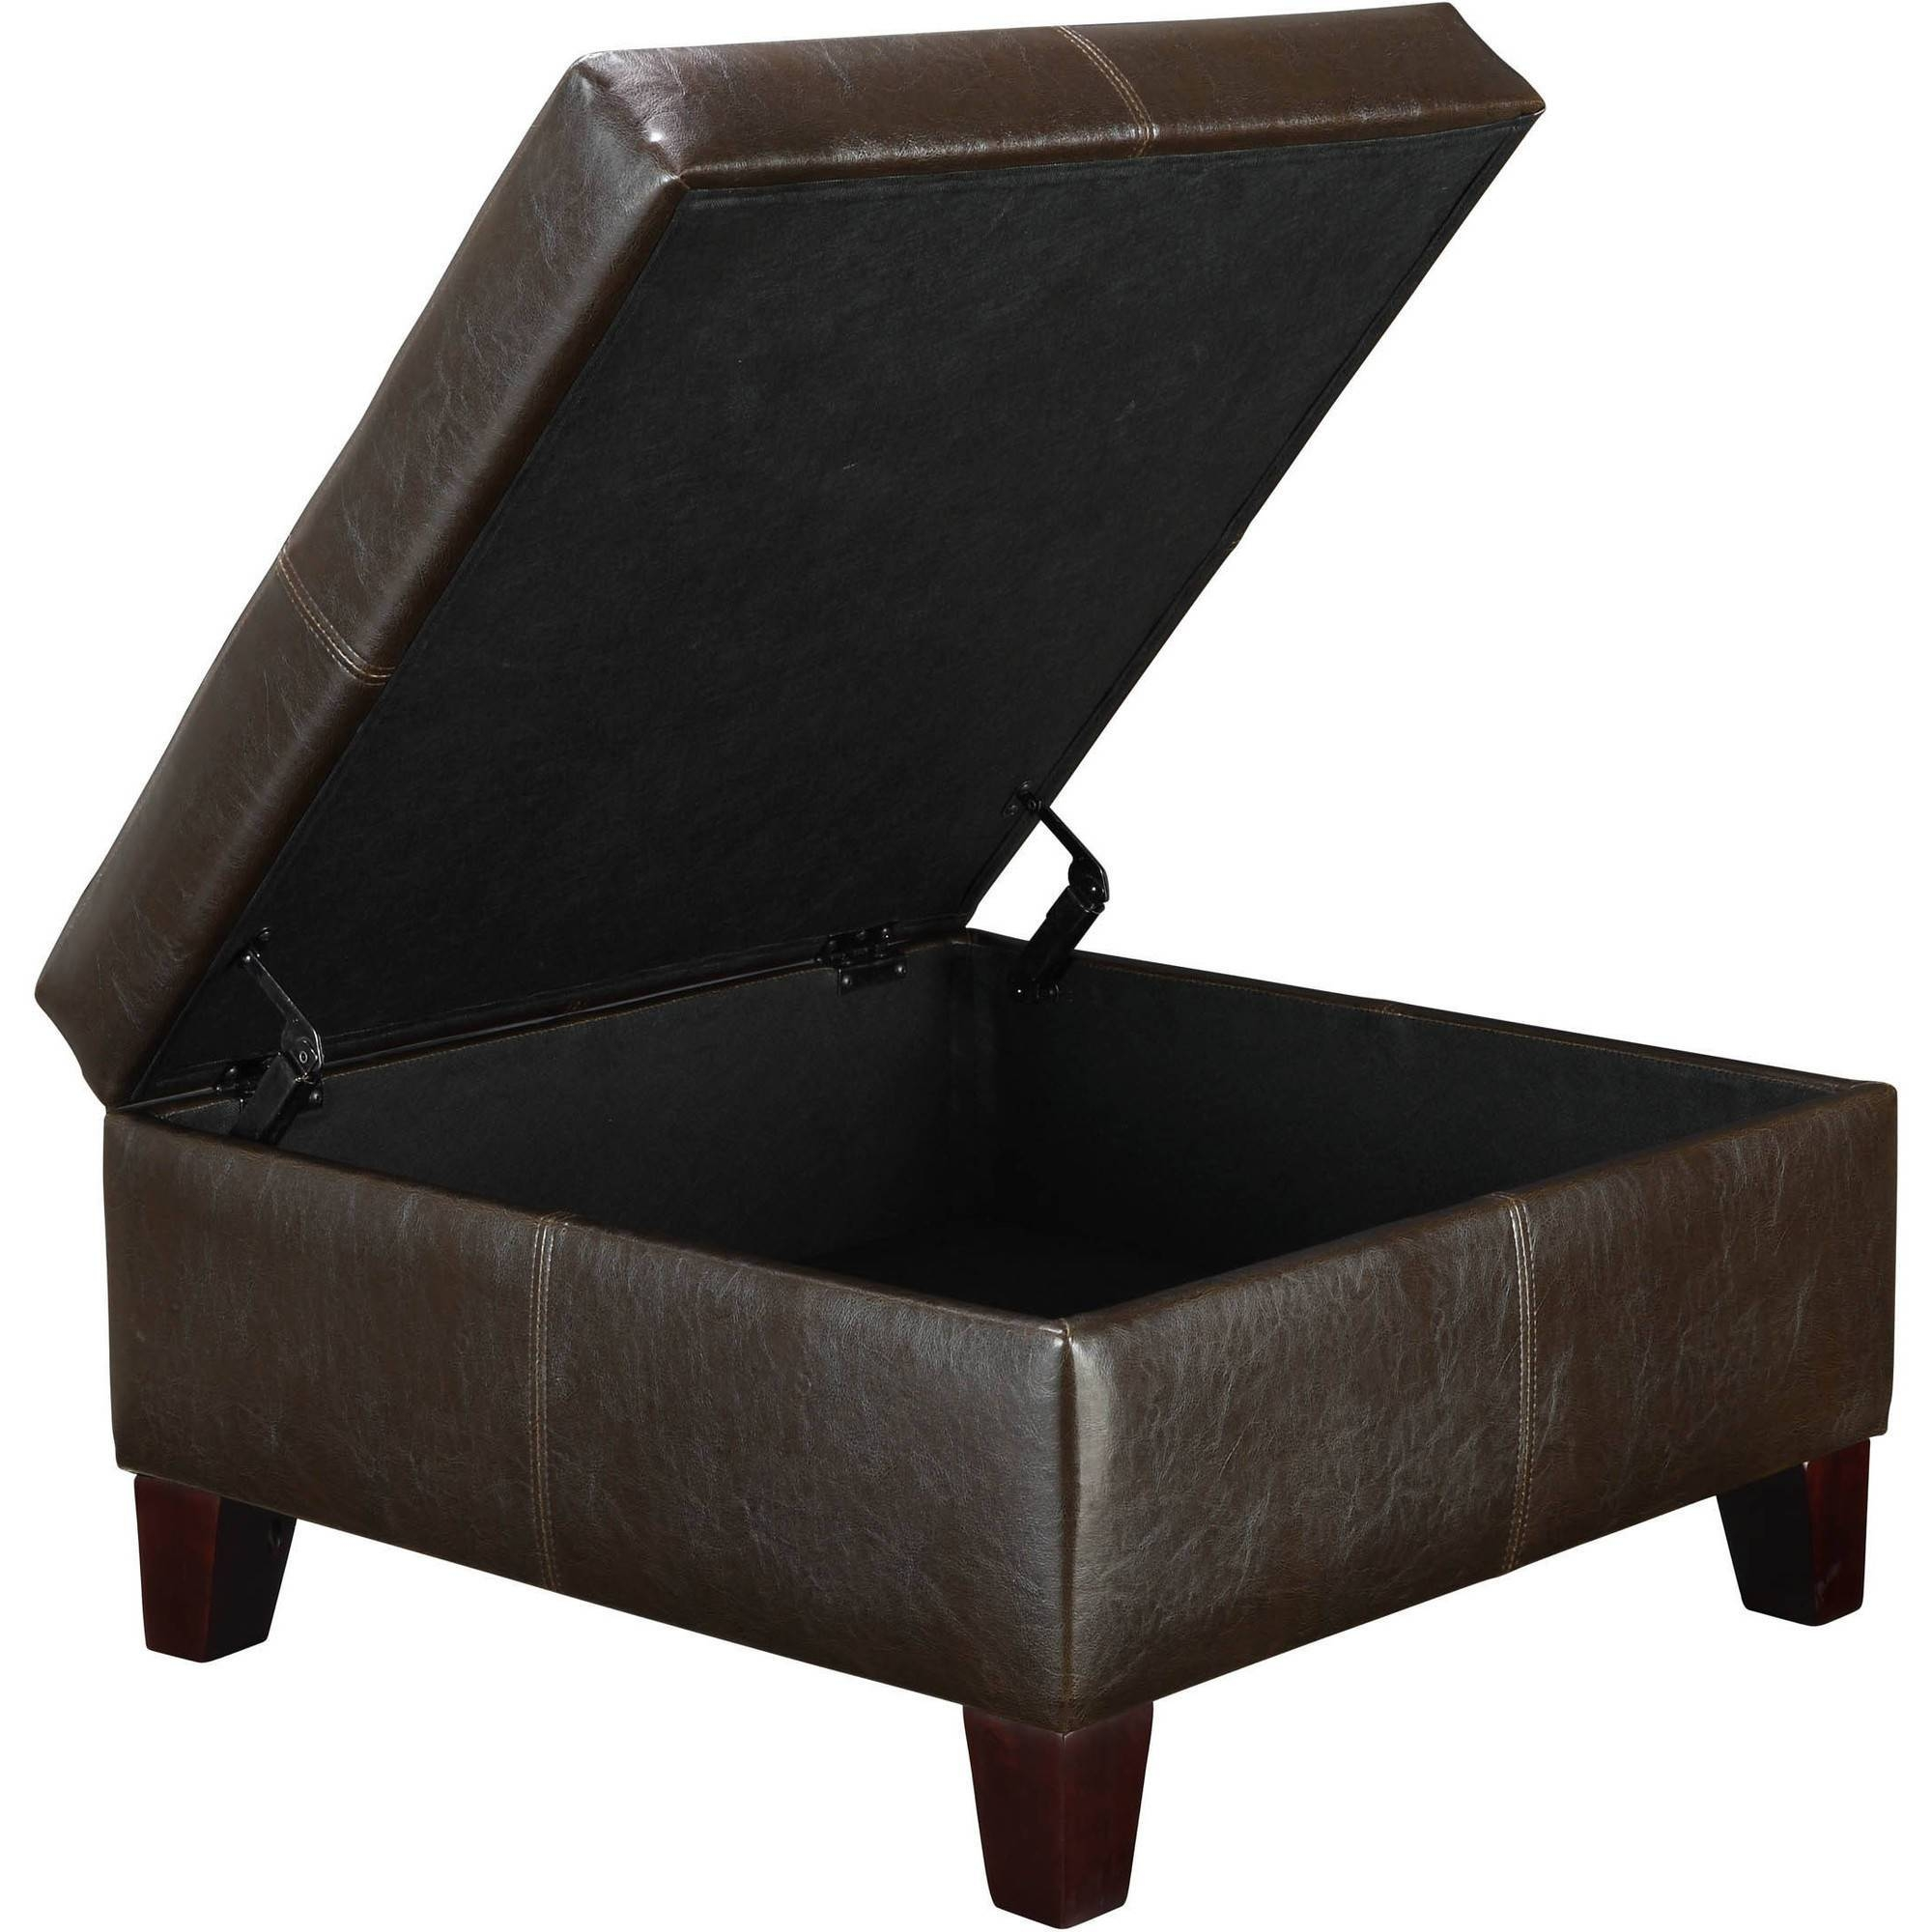 Furniture : Pleasant Brown Leather Ottoman Coffee Table Leather with Brown Leather Ottoman Coffee Tables (Image 18 of 30)